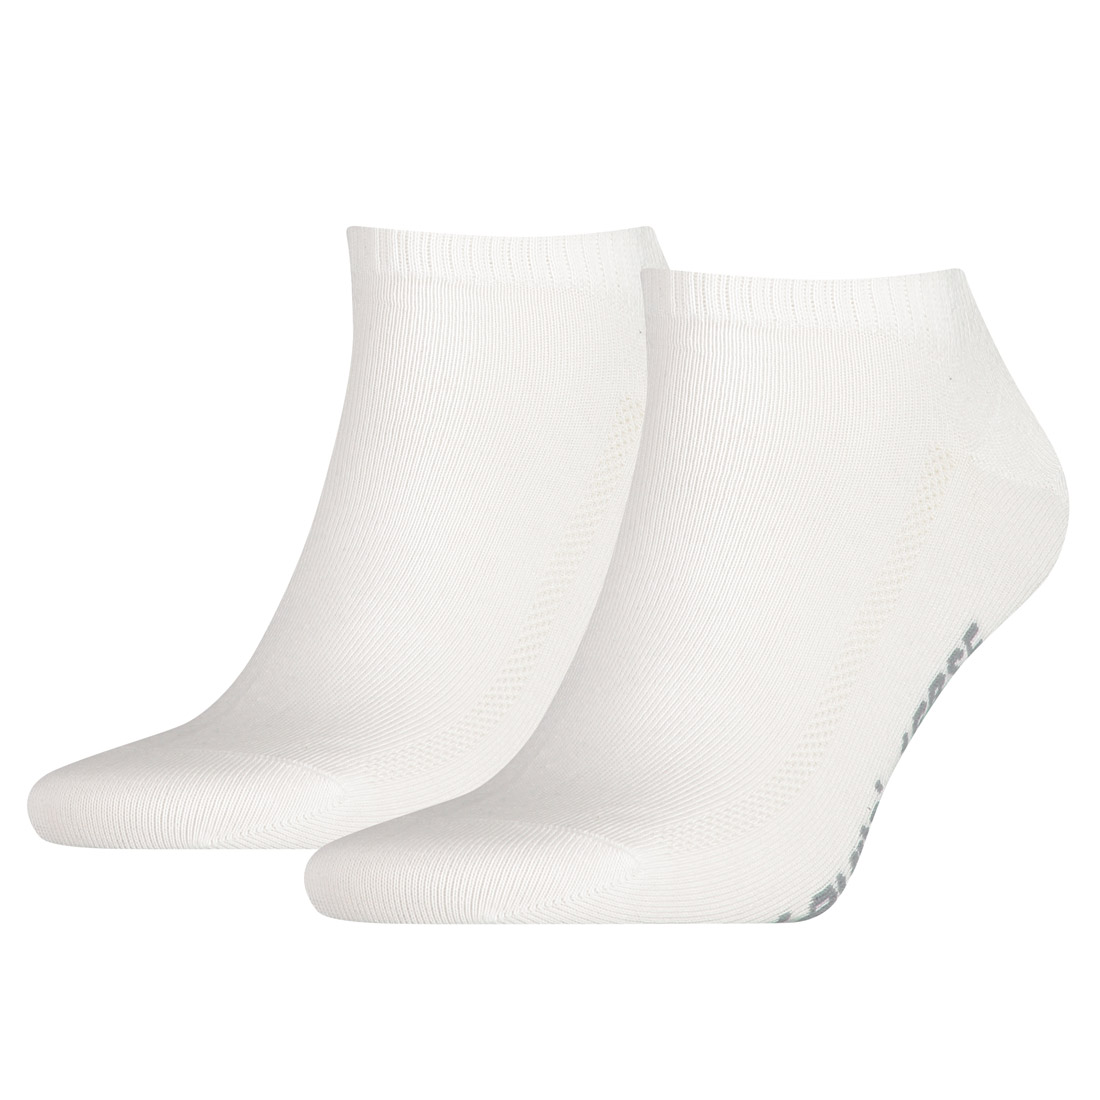 2 Paar Levis Unisex Socken 168SF Low Cut Sneakersocken Kurzsocken 300 - white, 39-42 von Levi's